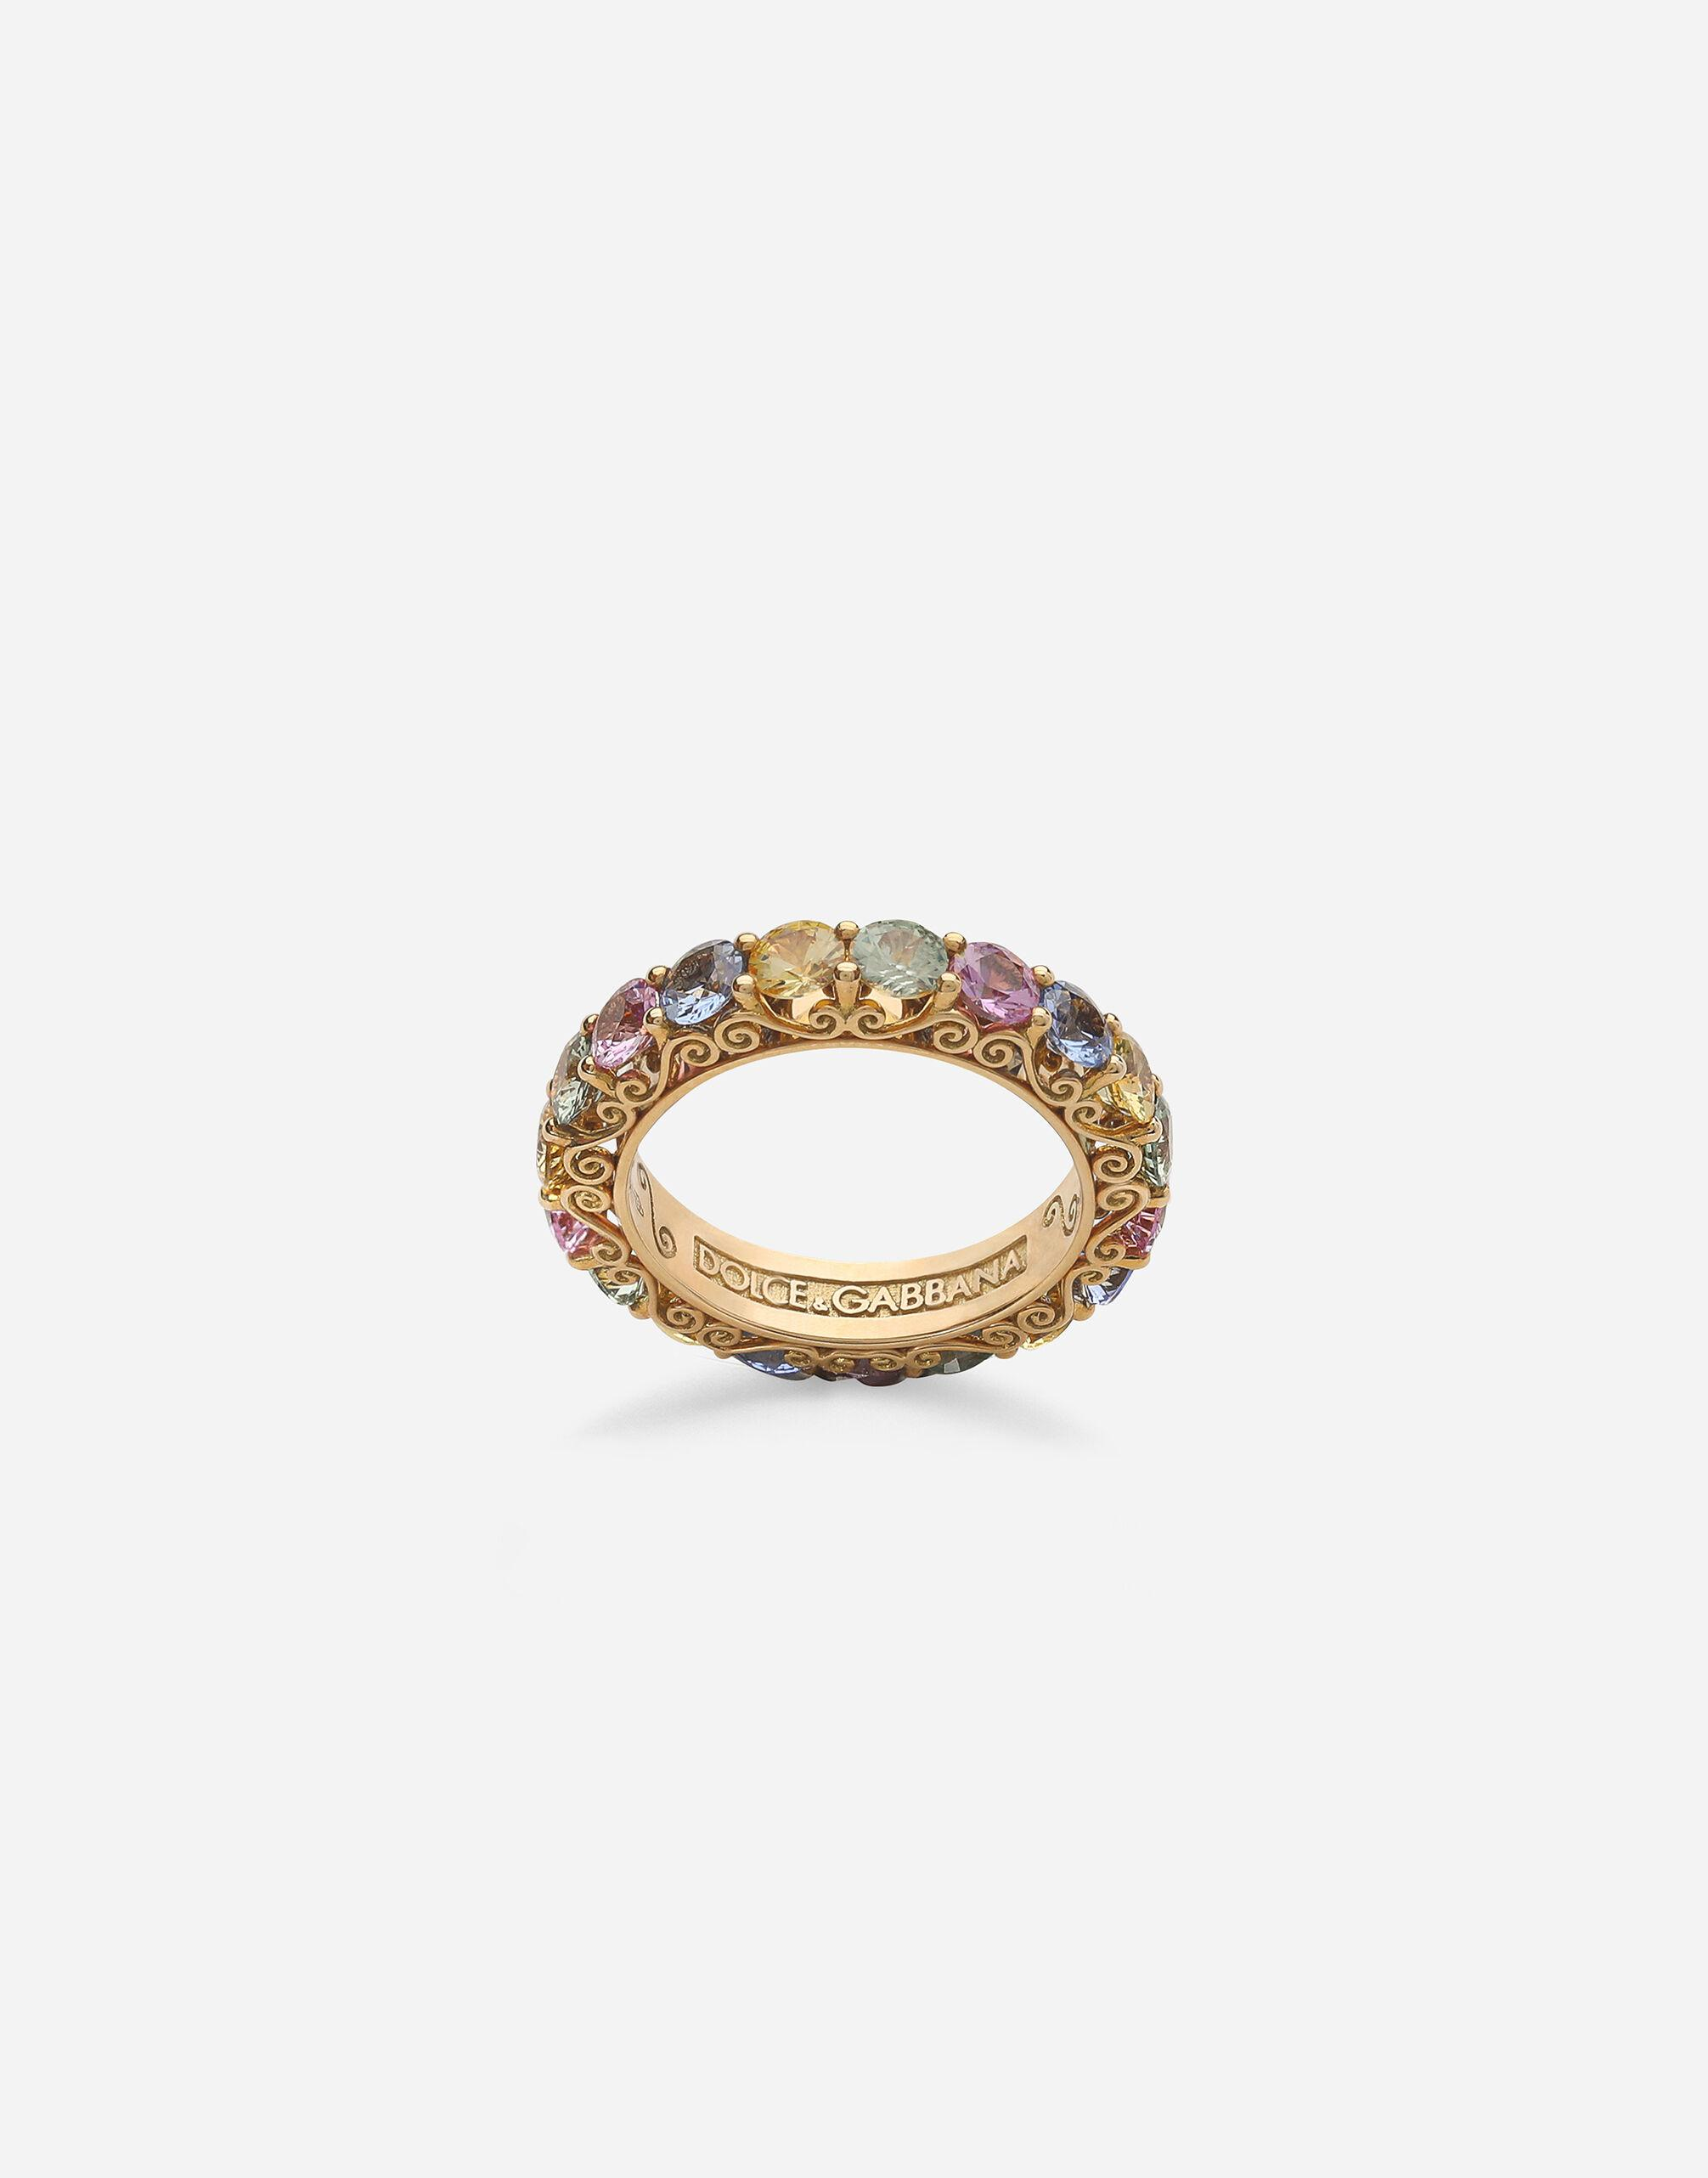 Heritage band ring in yellow 18kt gold with multicoloured sapphires